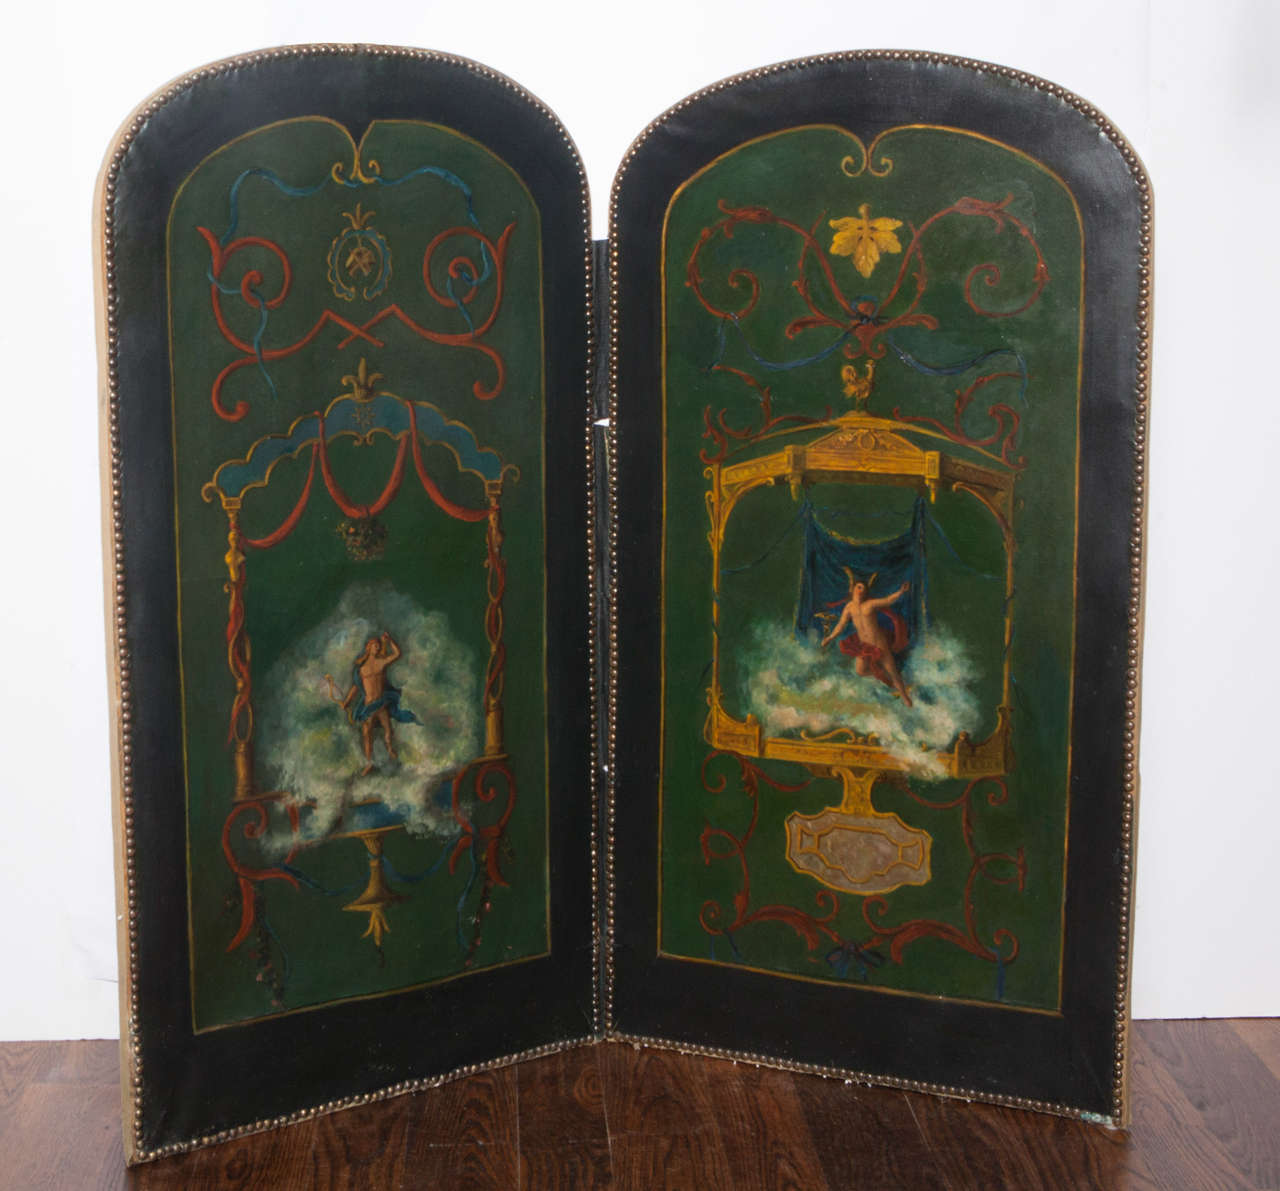 Two panel folding screen with oil paintings depicting mythological male figures.  Back of screen is upholstered in silk damask.  Brass nailhead trim.  Fabric hinges.